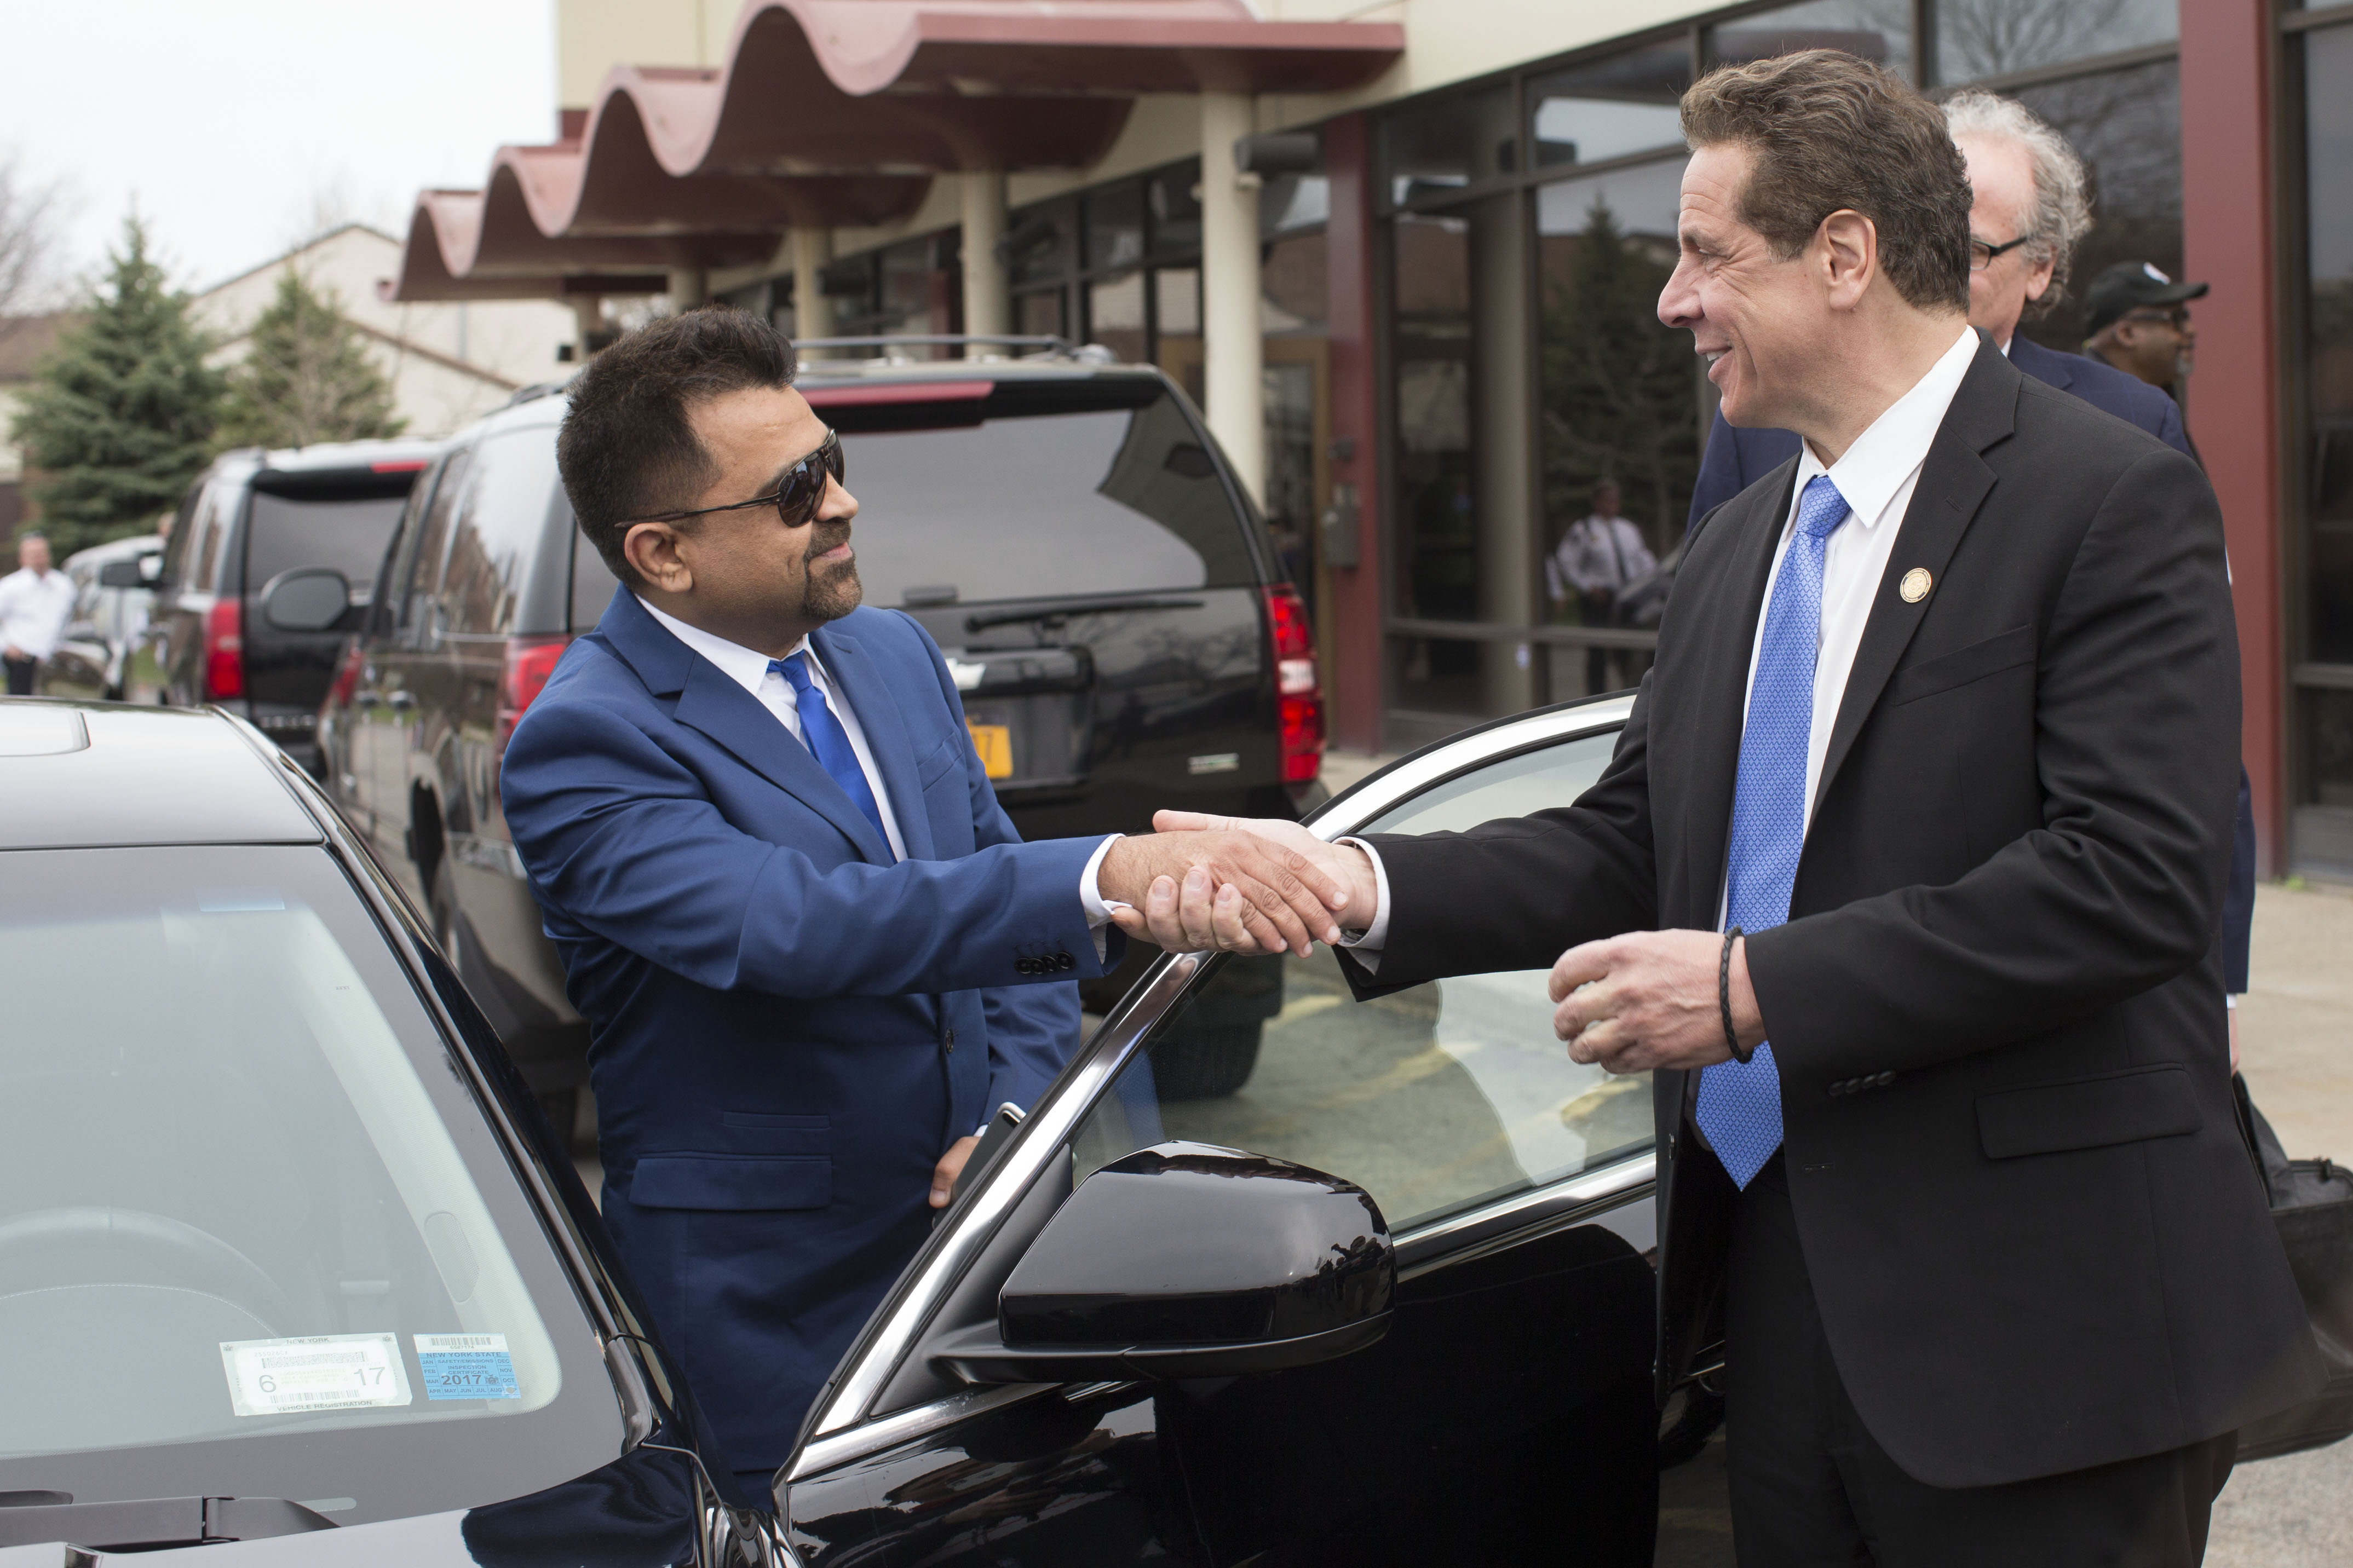 Gov. Cuomo thanks Uber driver Tariq Nawaz after Nawaz dropped him off at an event at the Rev. Smith Family Life Center, Tuesday, April 11, 2017. (Derek Gee/Buffalo News)